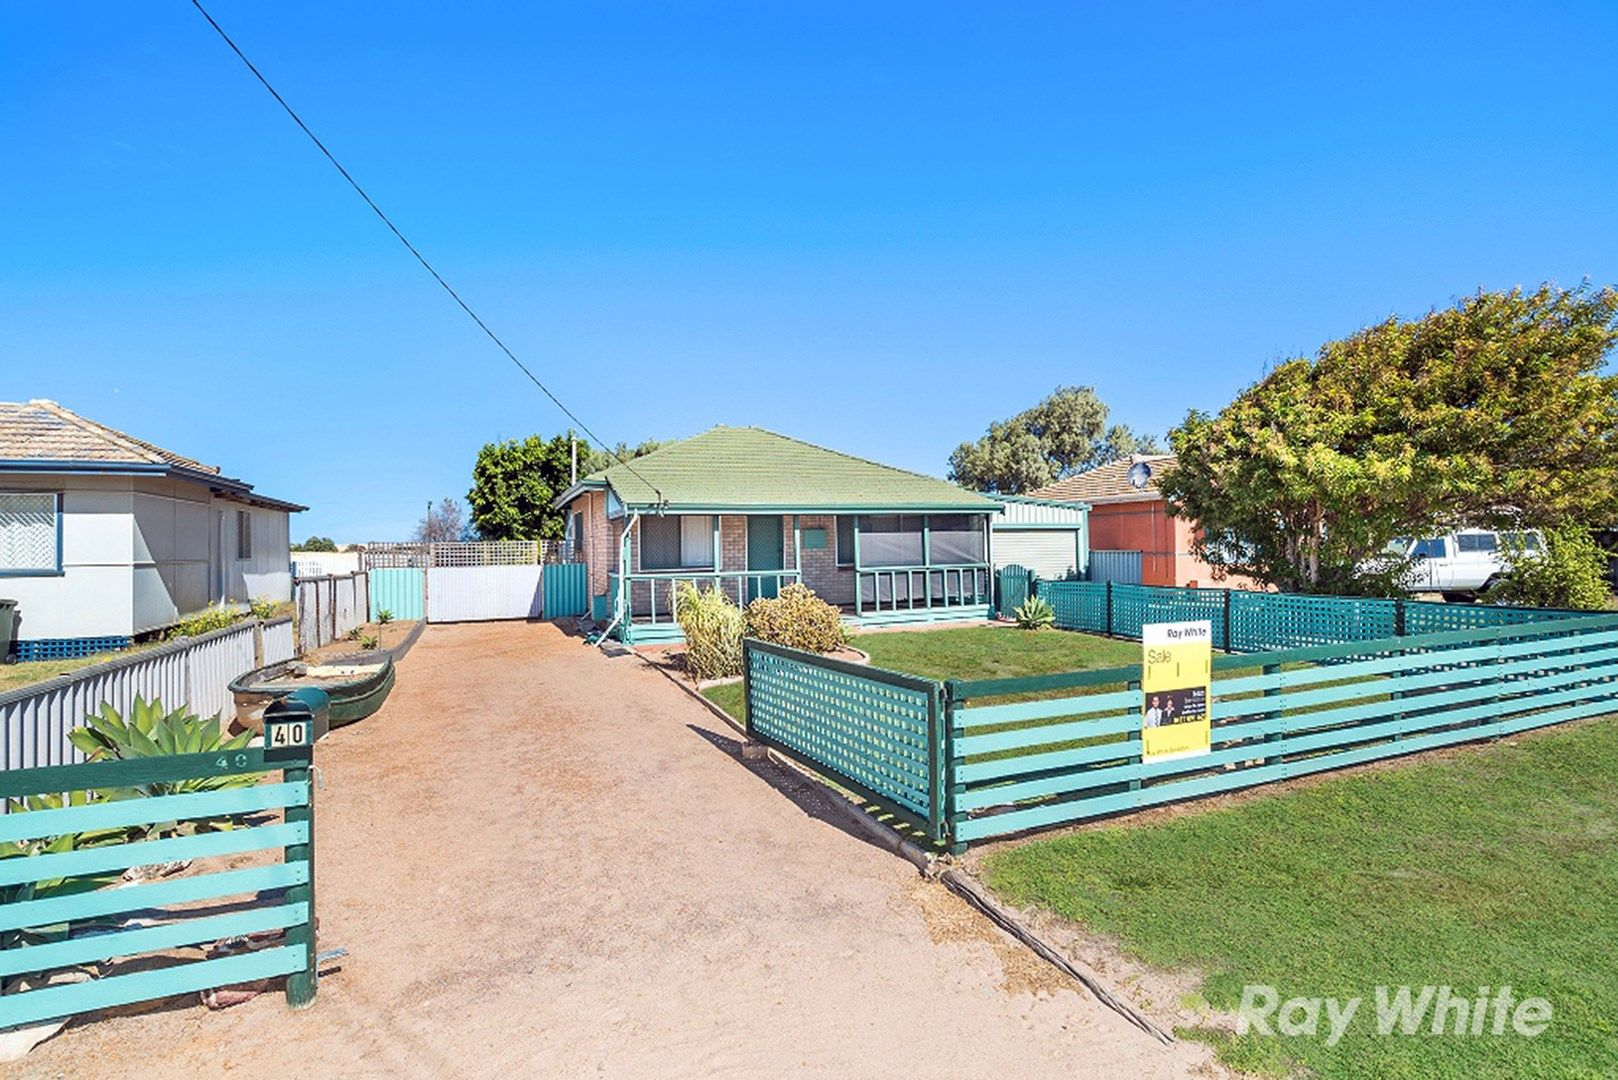 40 Maley Way, Beachlands WA 6530, Image 0